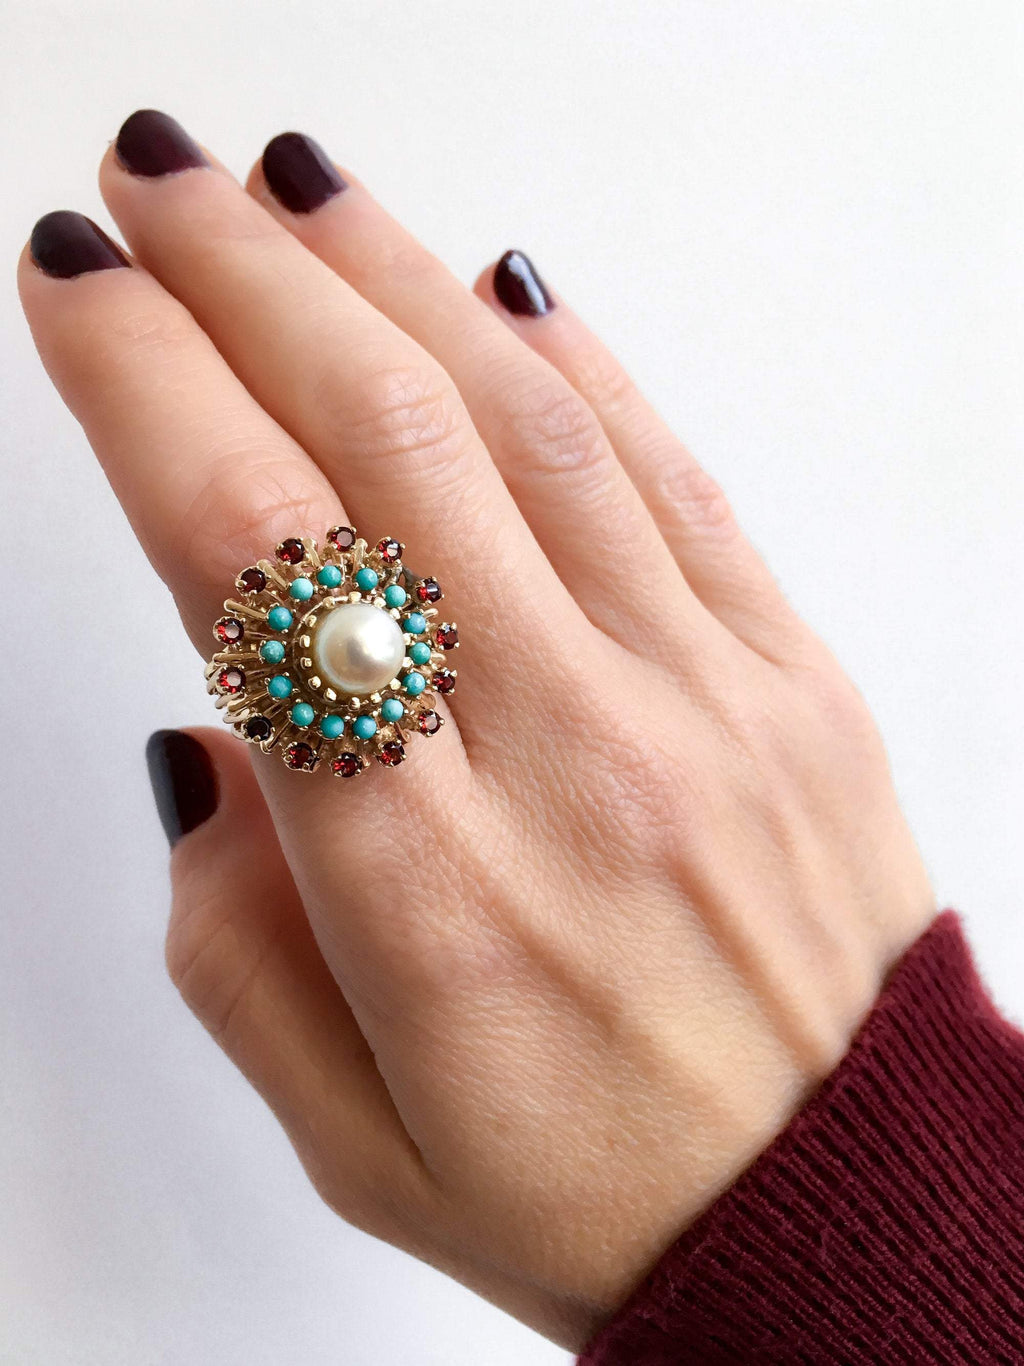 Pearl Cocktail Ring with Turquoise and Garnet Halos